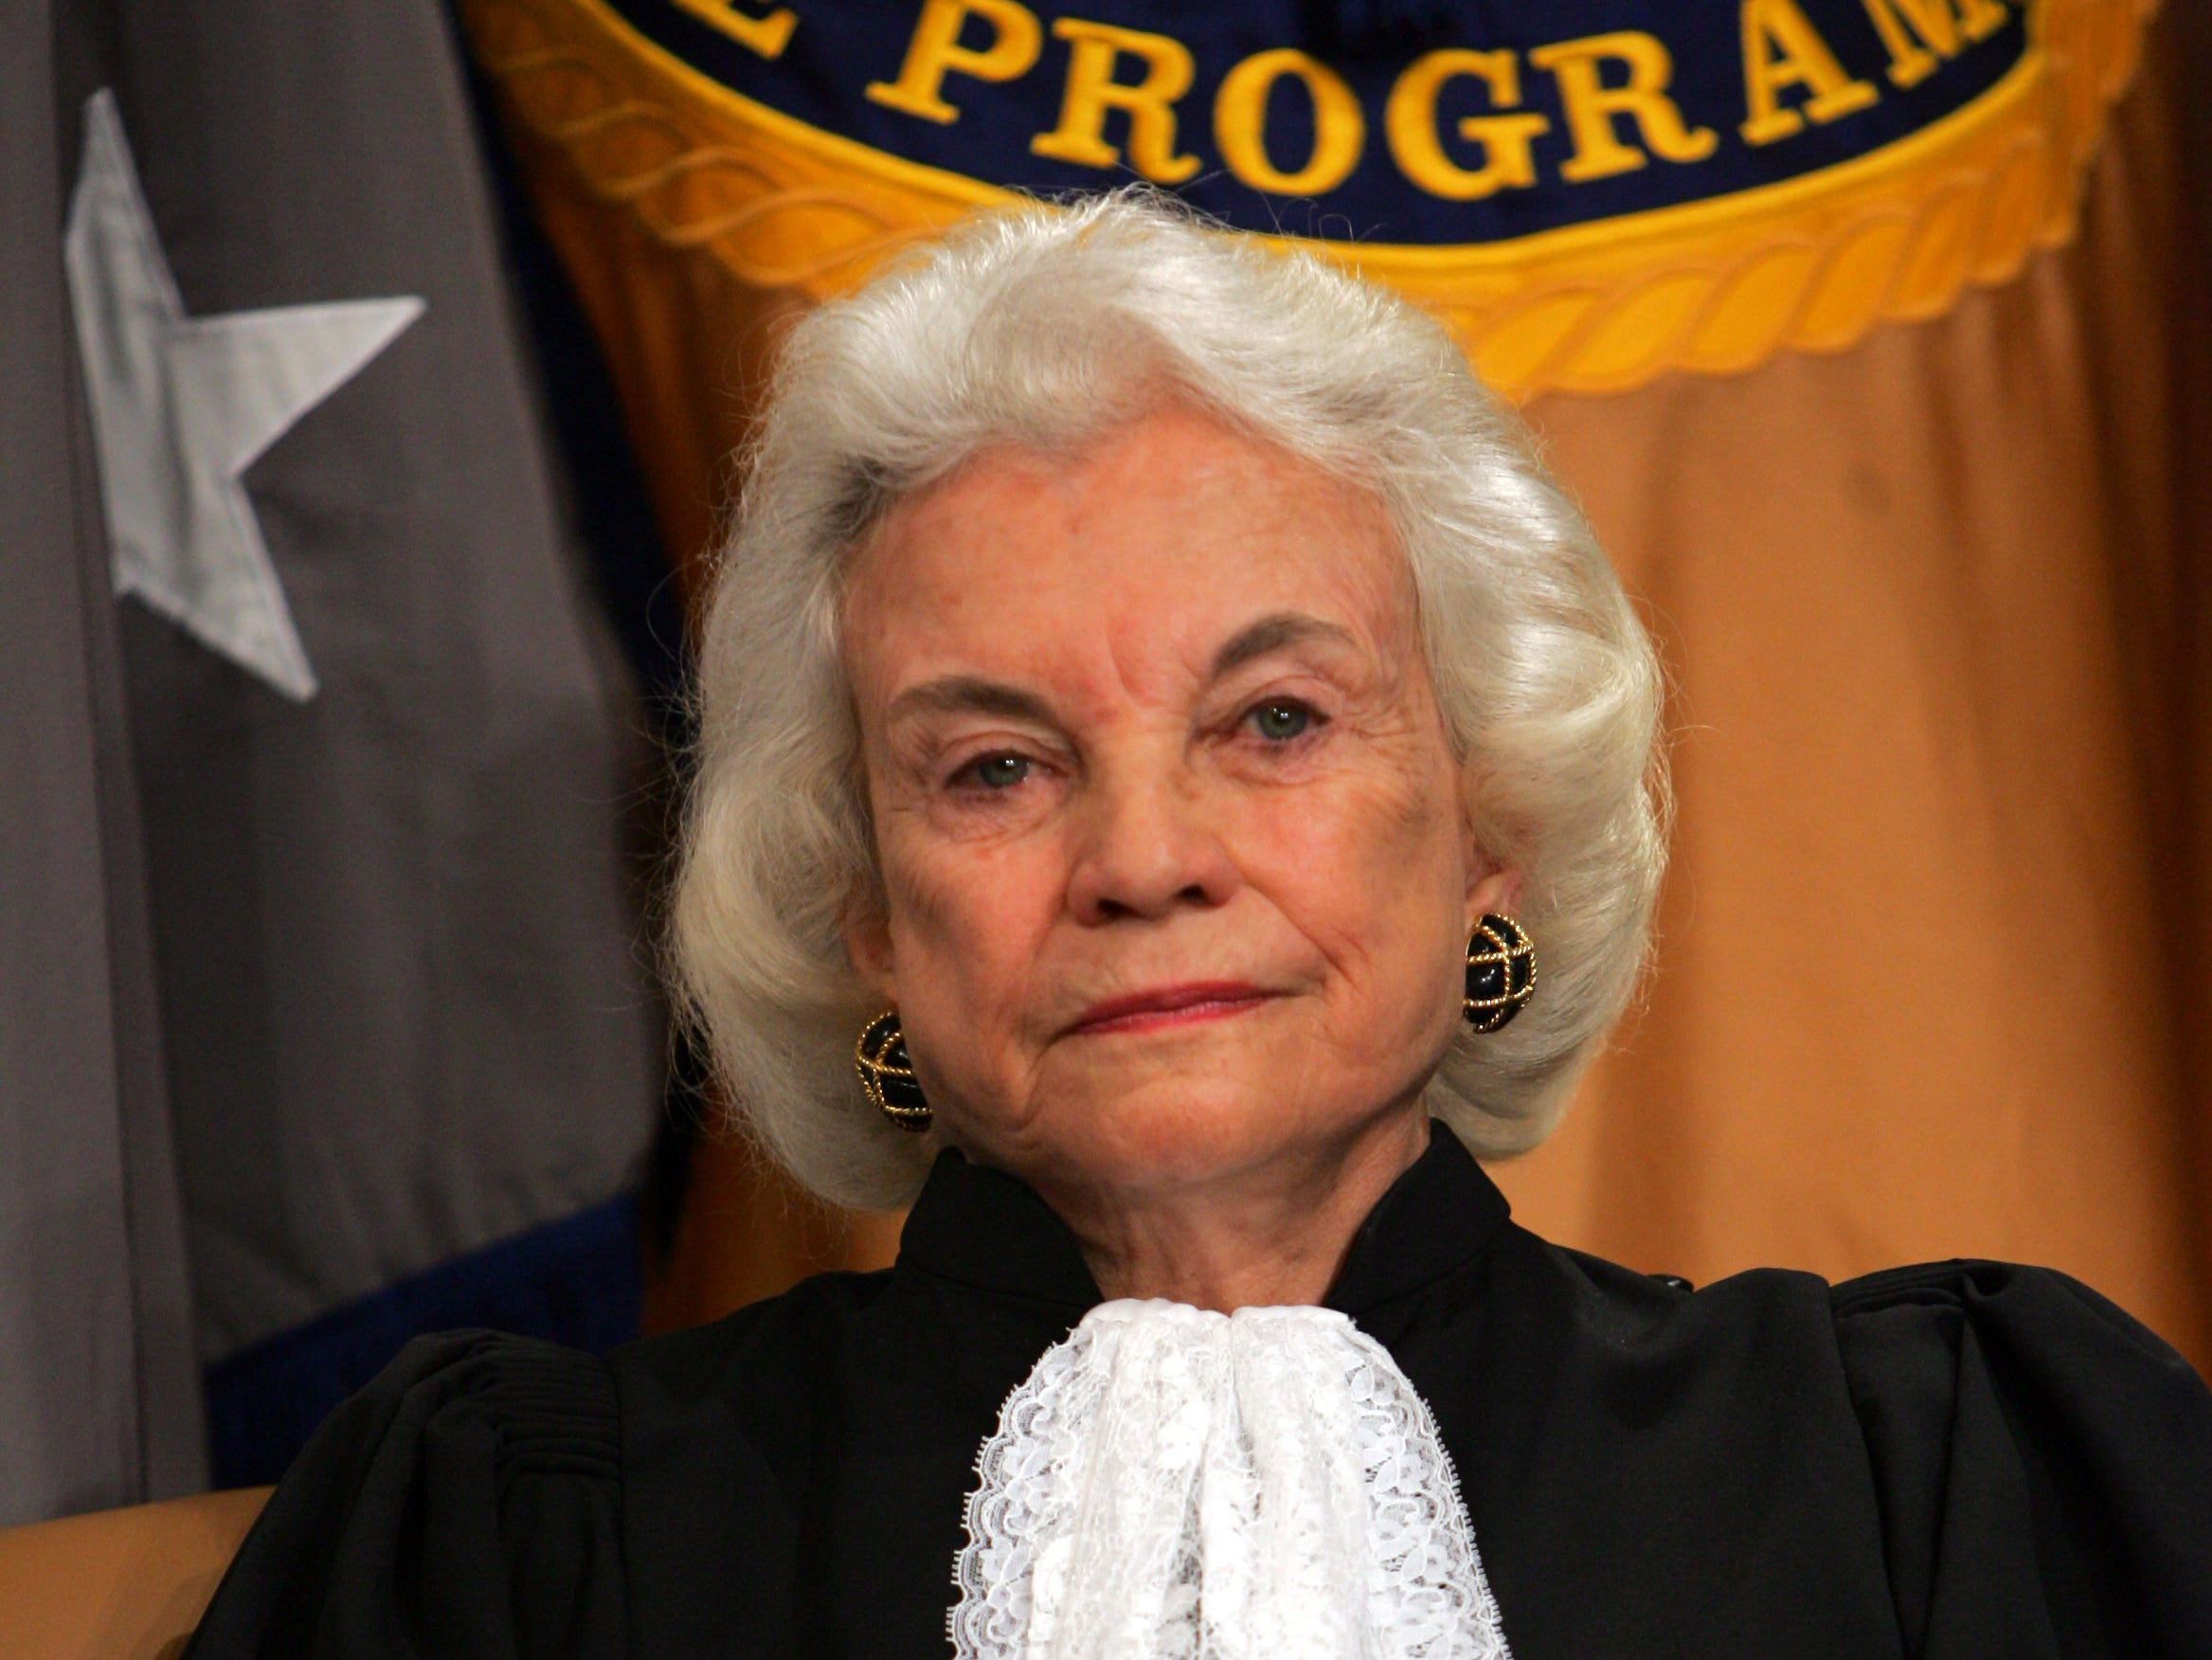 Supreme Court Justice Sandra Day O'Connor at the Justice Department in Washington, Feb. 14, 2005, for the swearing in ceremony of United States Attorney General Alberto Gonzales.